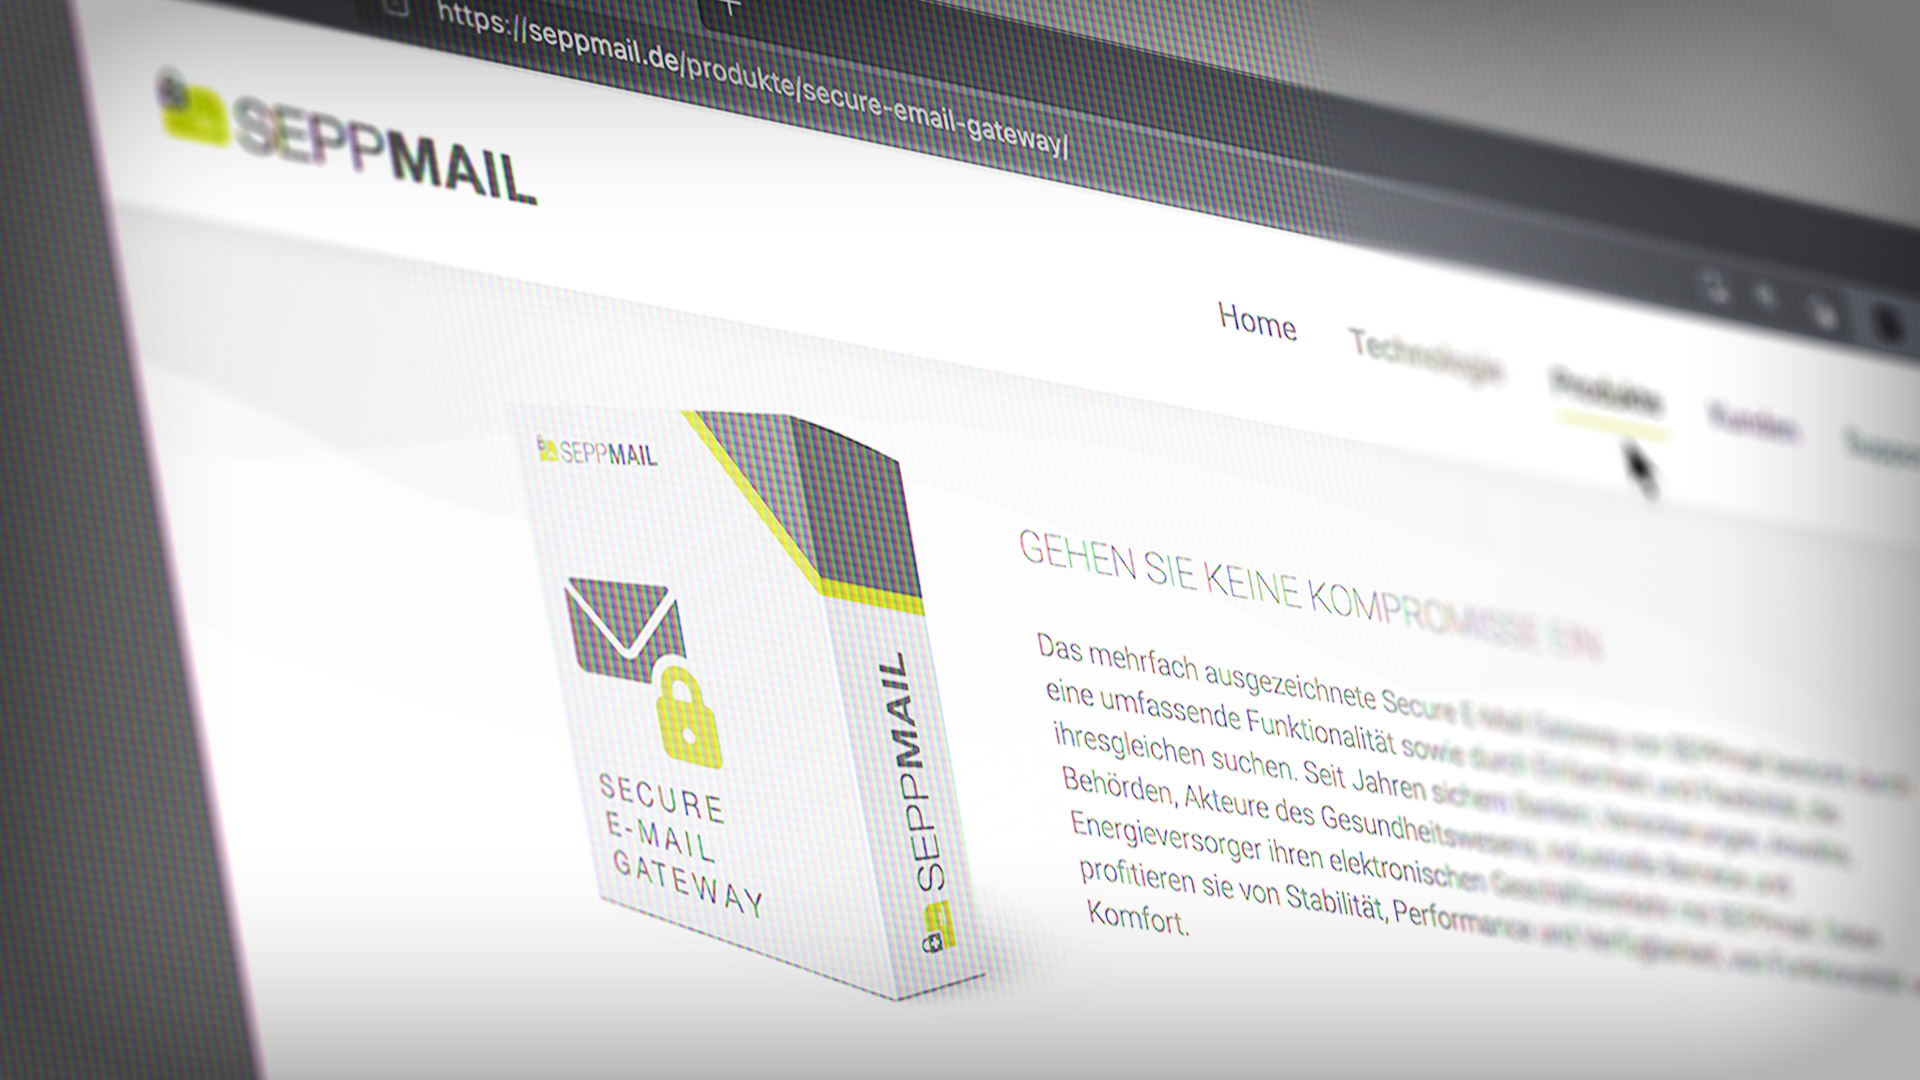 users of the popular Swiss solution SEPPMail now have the possibility to retrieve certificates from an eIDAS-qualified provider in Austria.